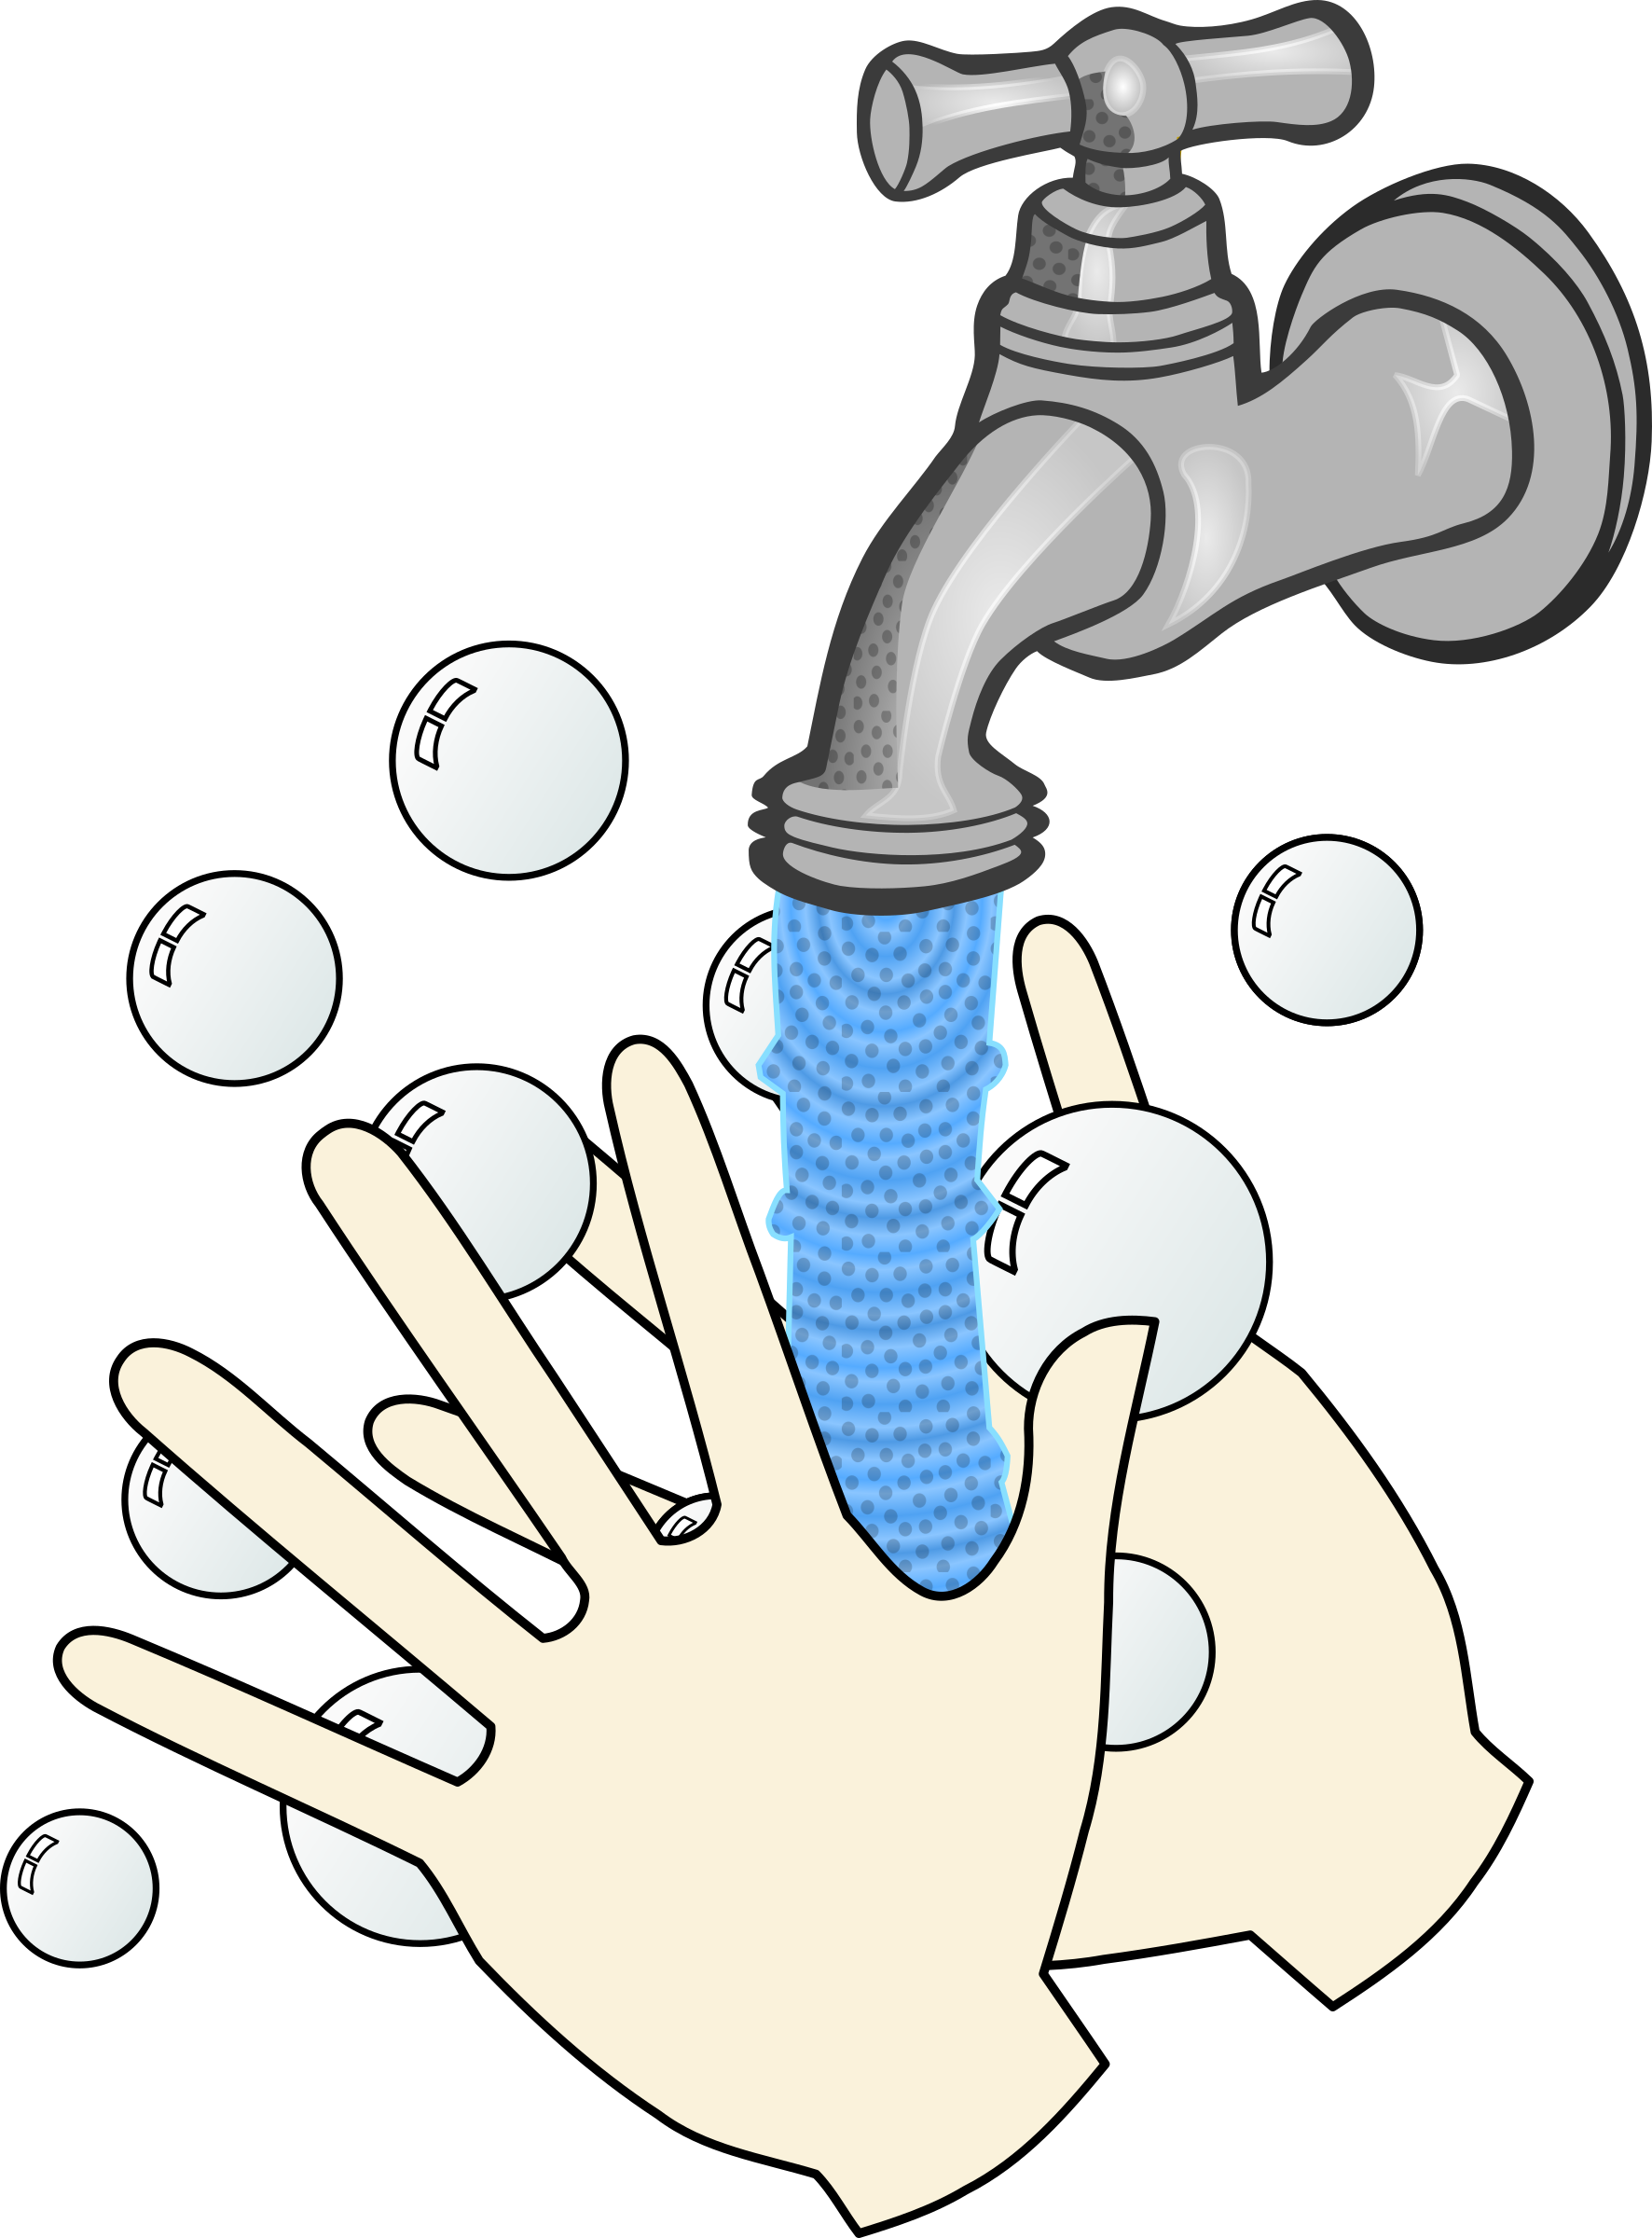 Washing your hands with soap and water vector clipart image.